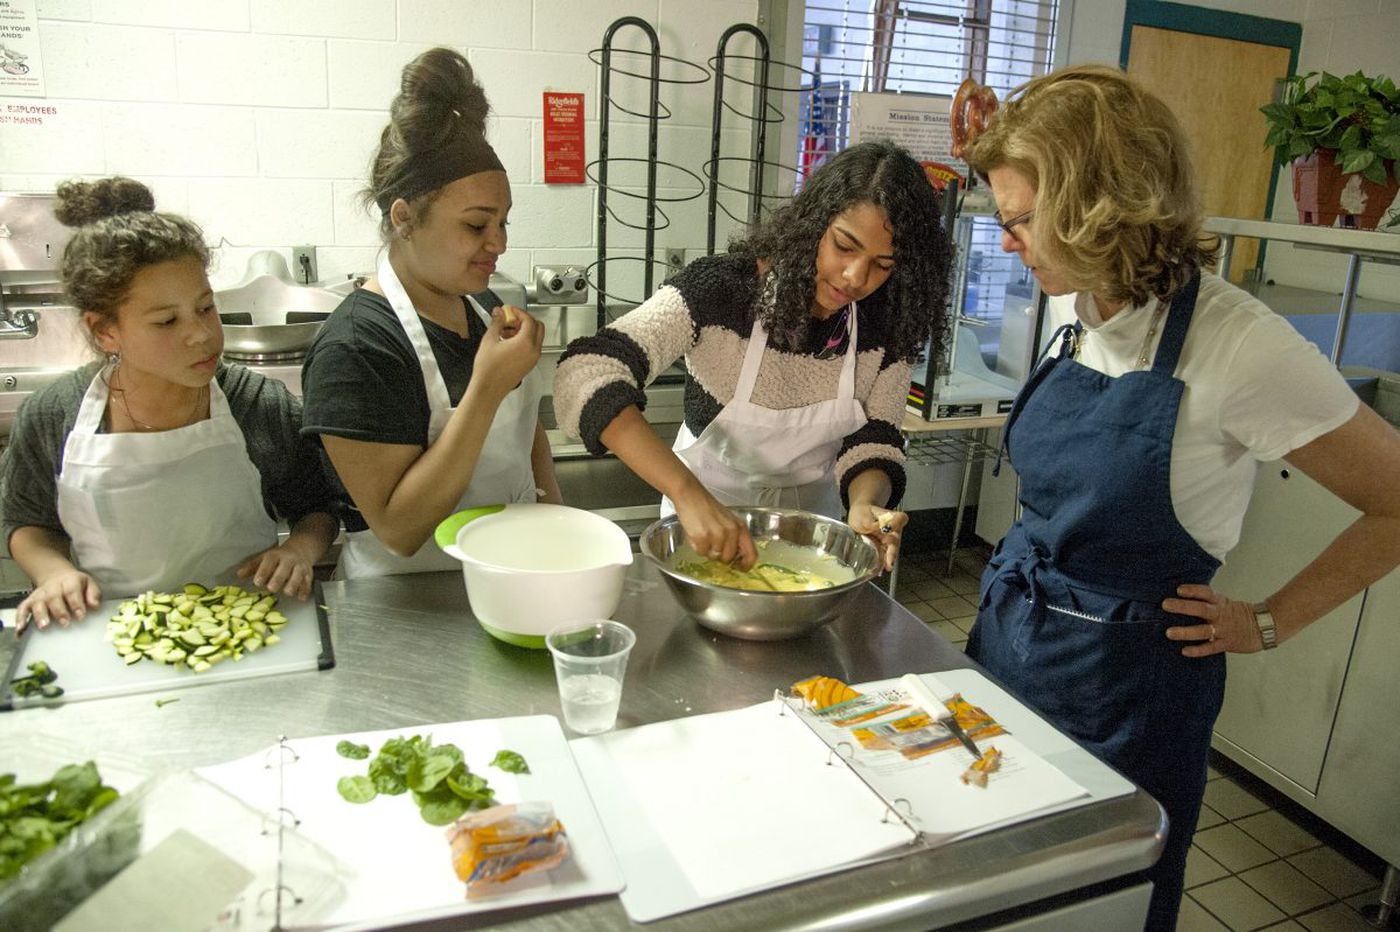 Healthy cooking on the cheap, brought to city kids by an army of volunteers